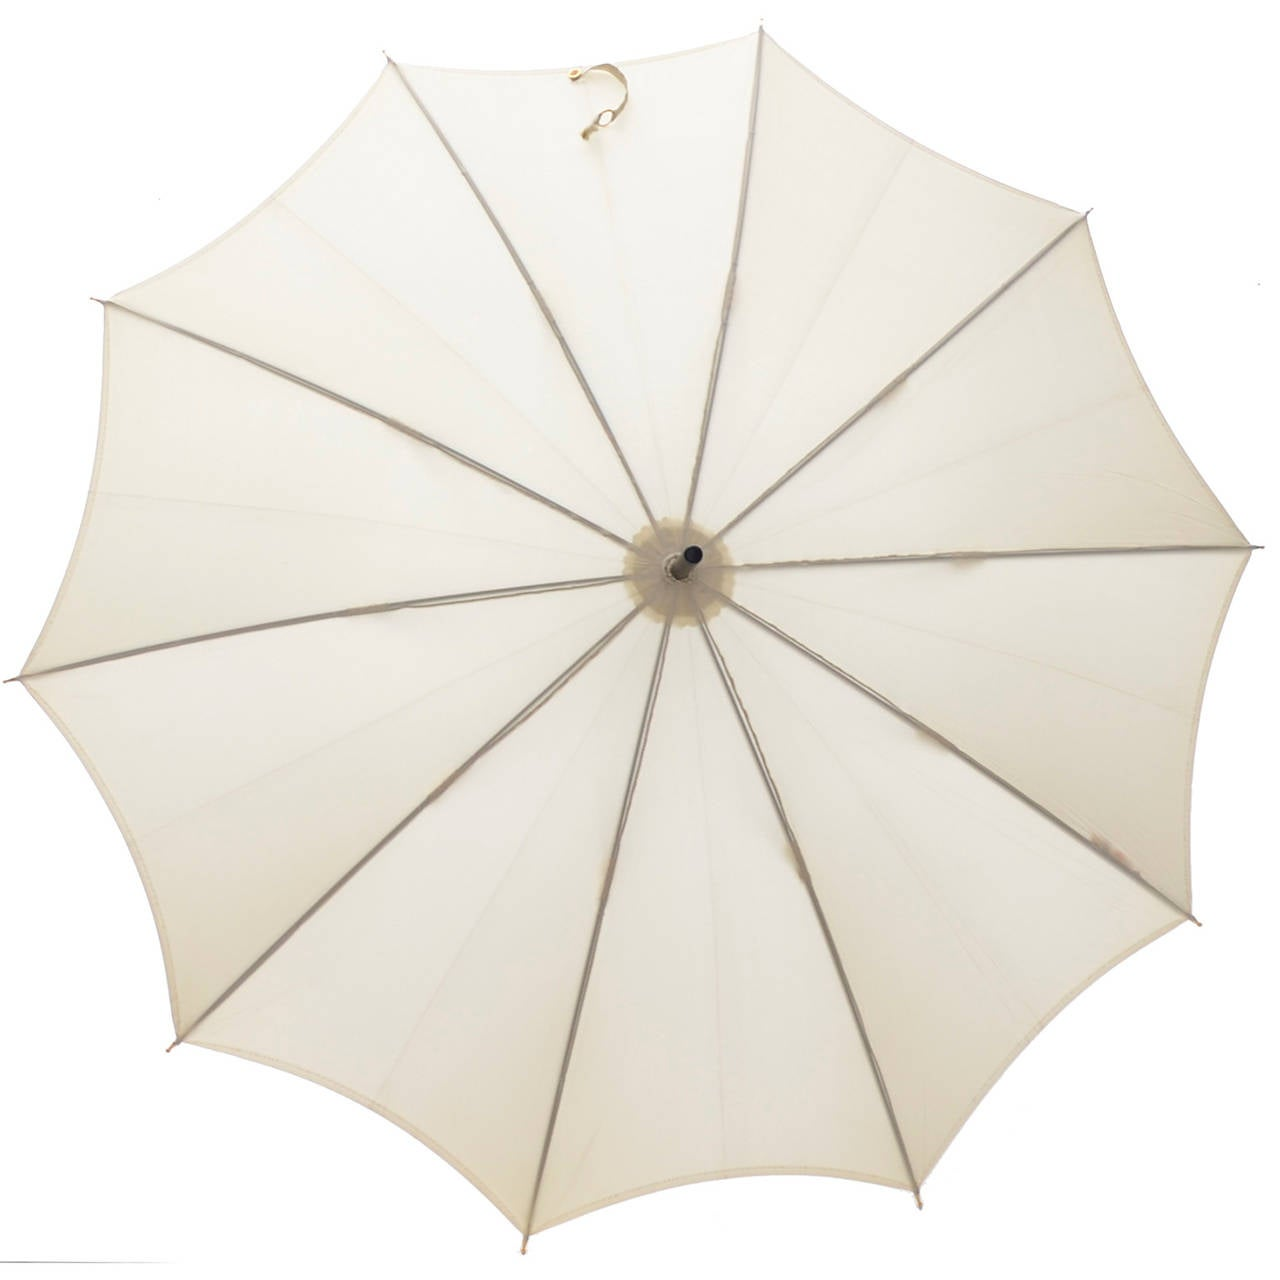 Gucci 1970s Vintage Umbrella Ivory Original Sleeve Italy 3